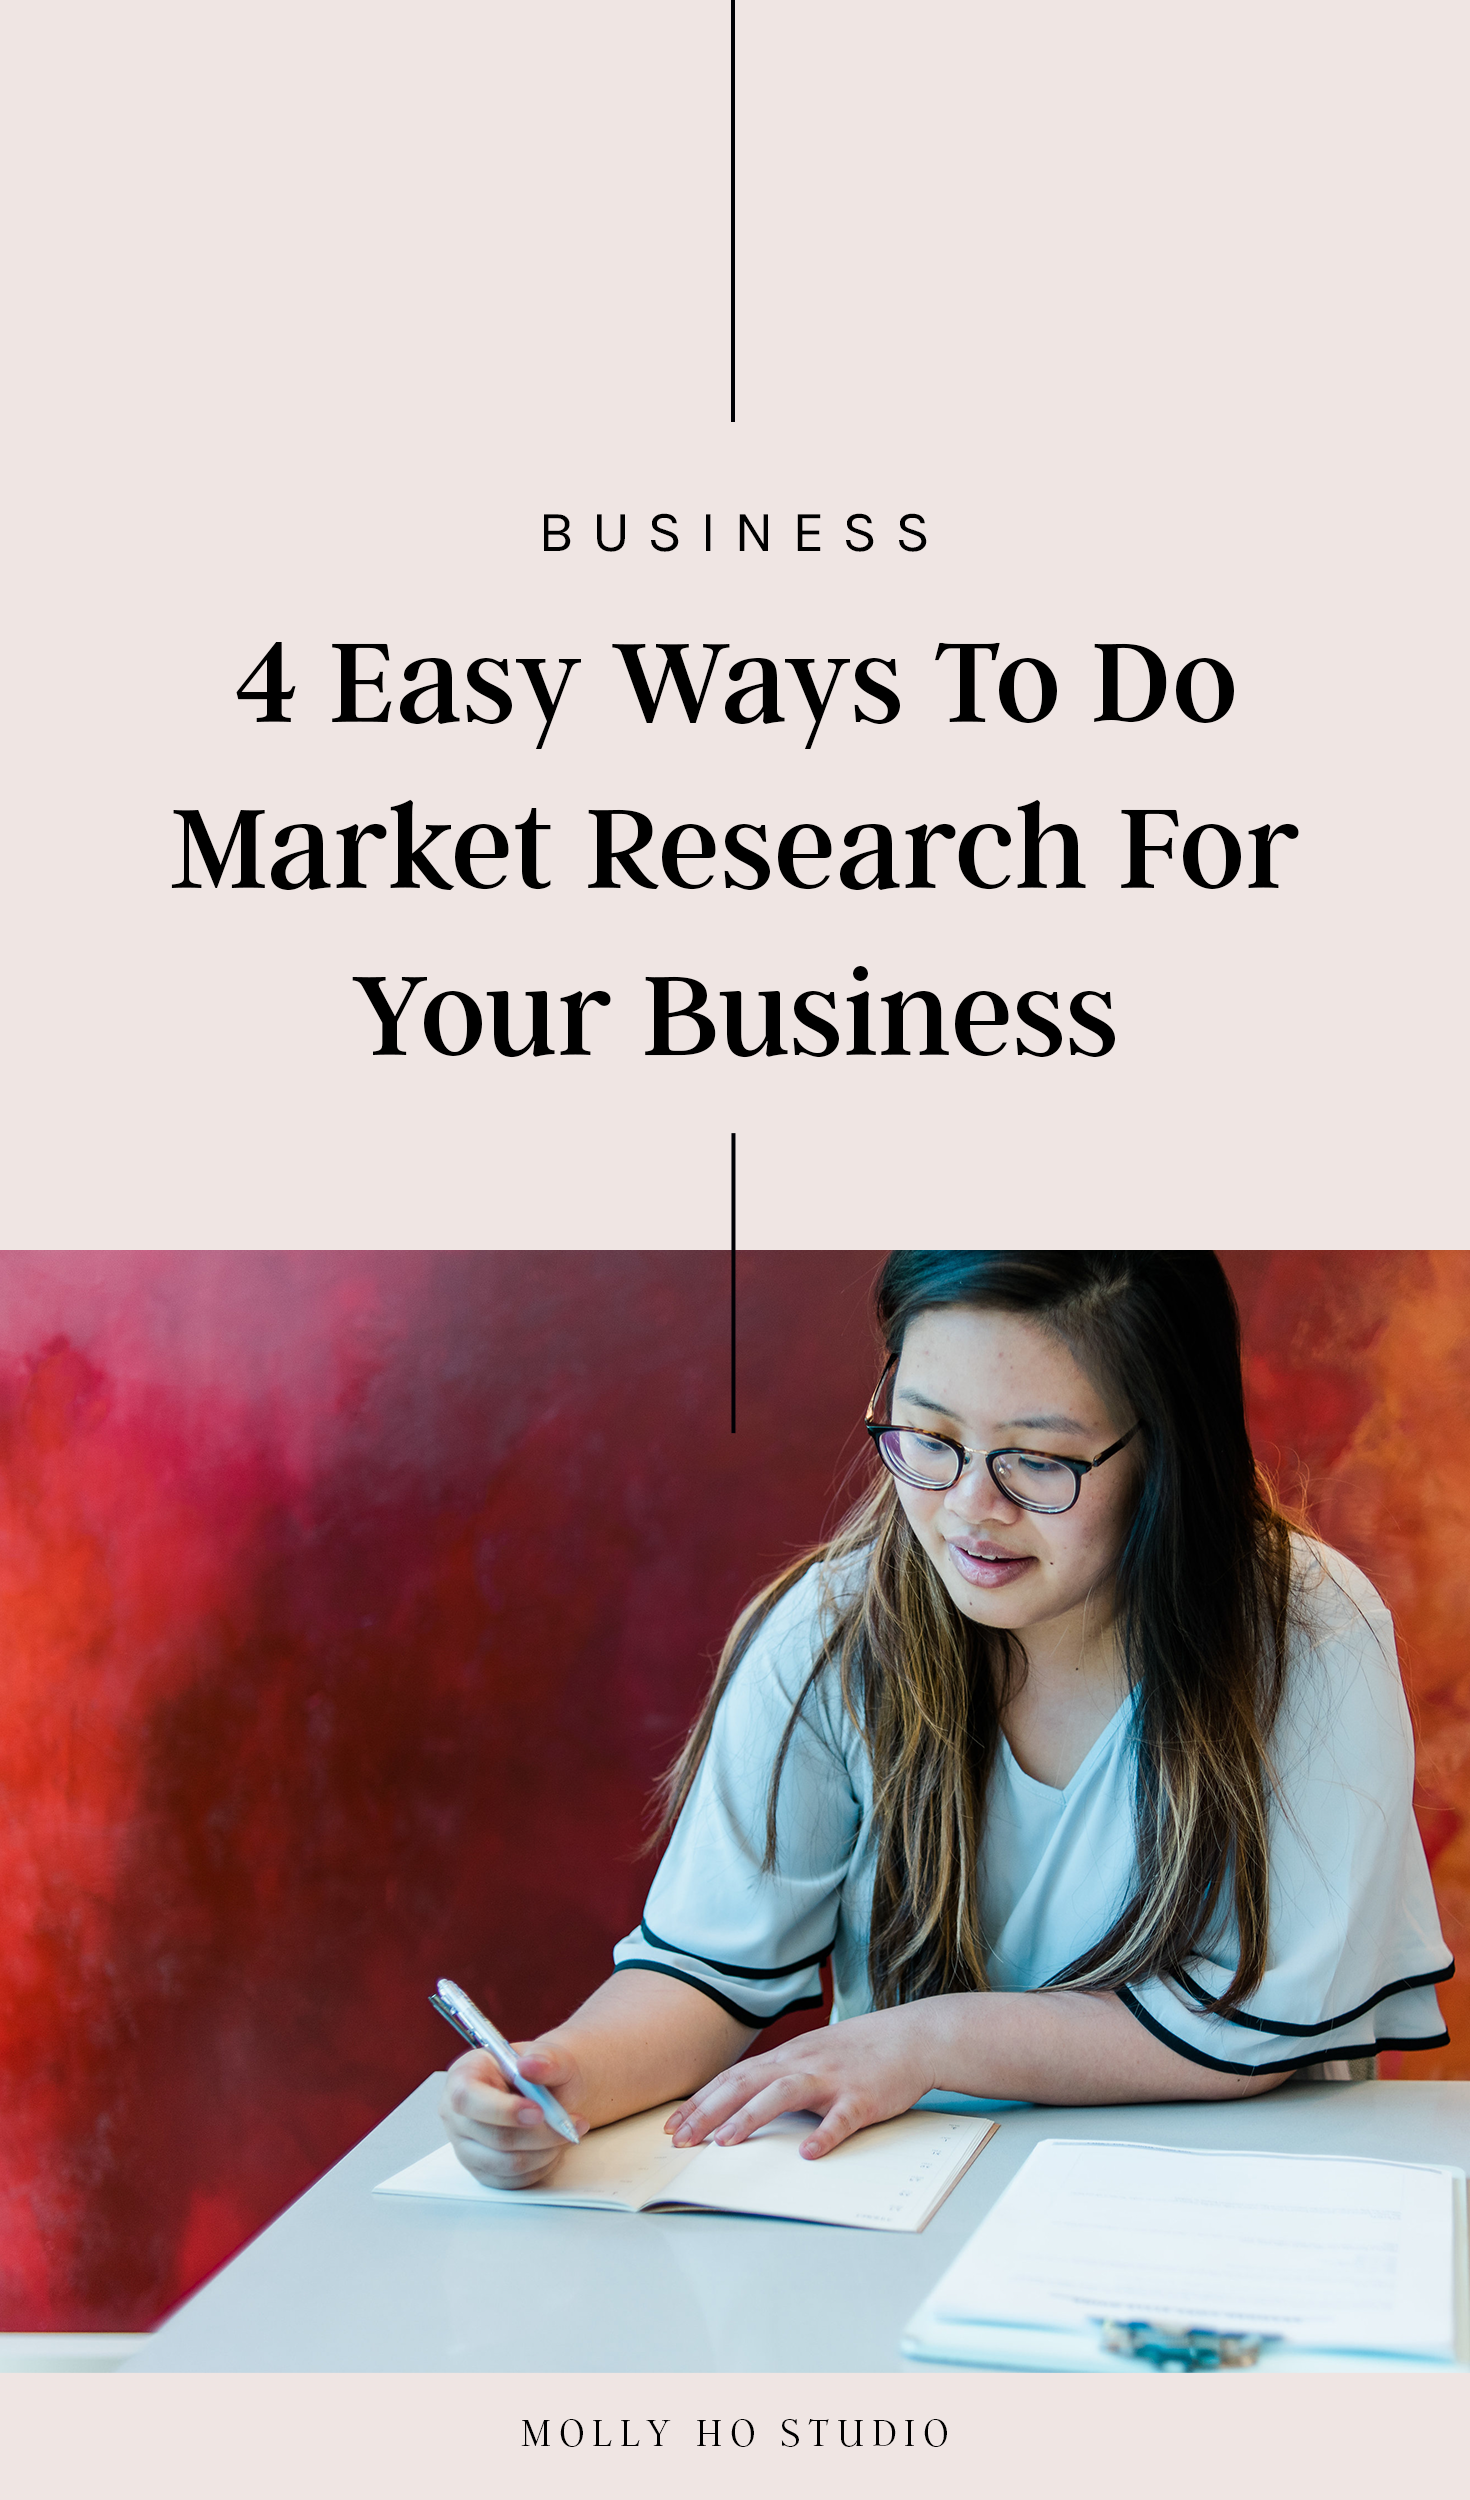 4 Easy Ways To Do Market Research For Your Business | How To Do Market Research for Your Small Business | What Is Market Research | Why Is Market Research Important | Marketing Research Examples | Content Strategy and Marketing | Blogging Tips for Small Businesses and Bloggers | Ideal Client Avatar Research | Personal Branding | Creative Entrepreneurship | Molly Ho Studio